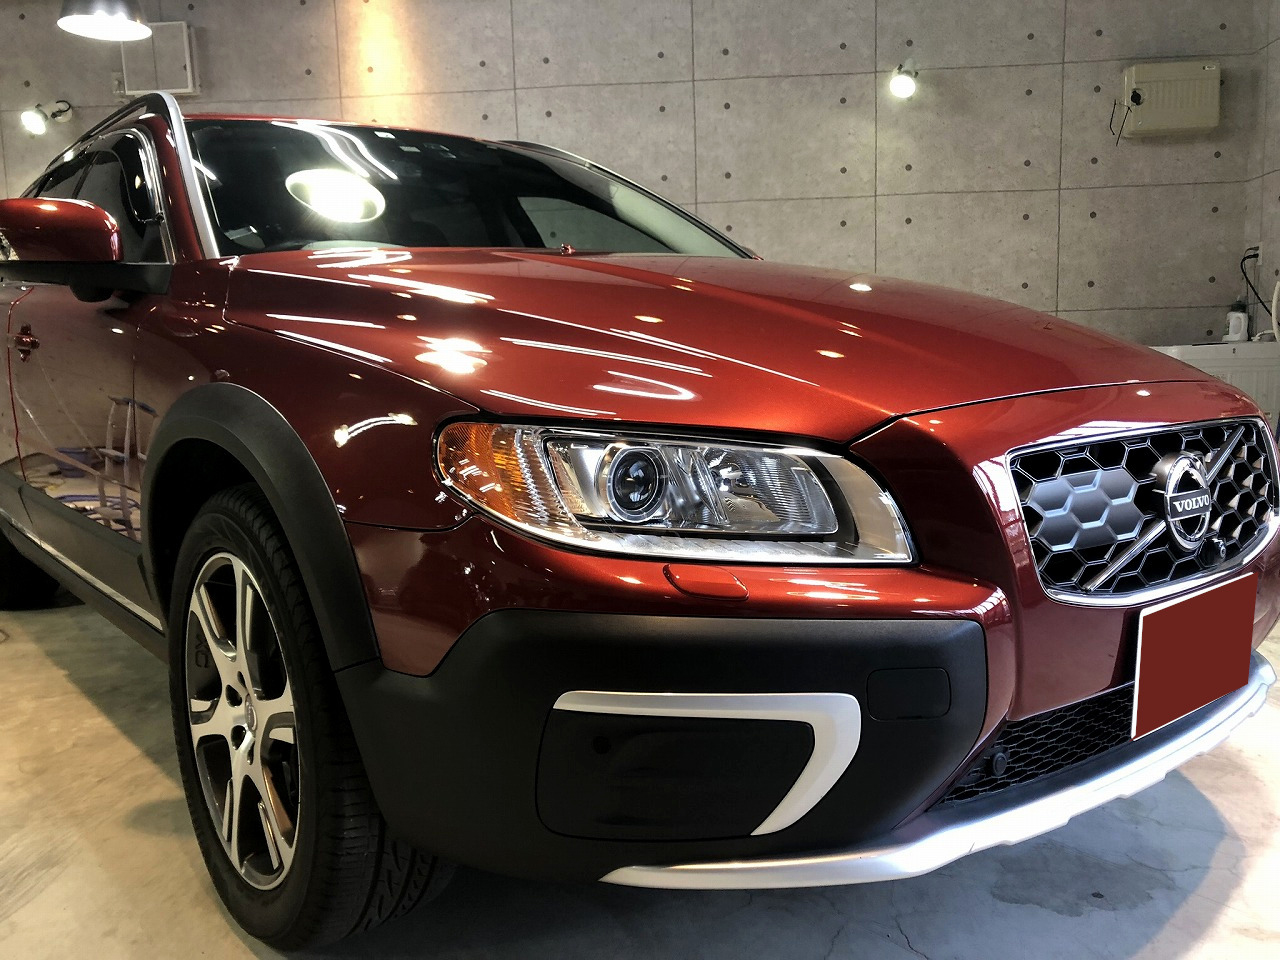 xc70_red_001